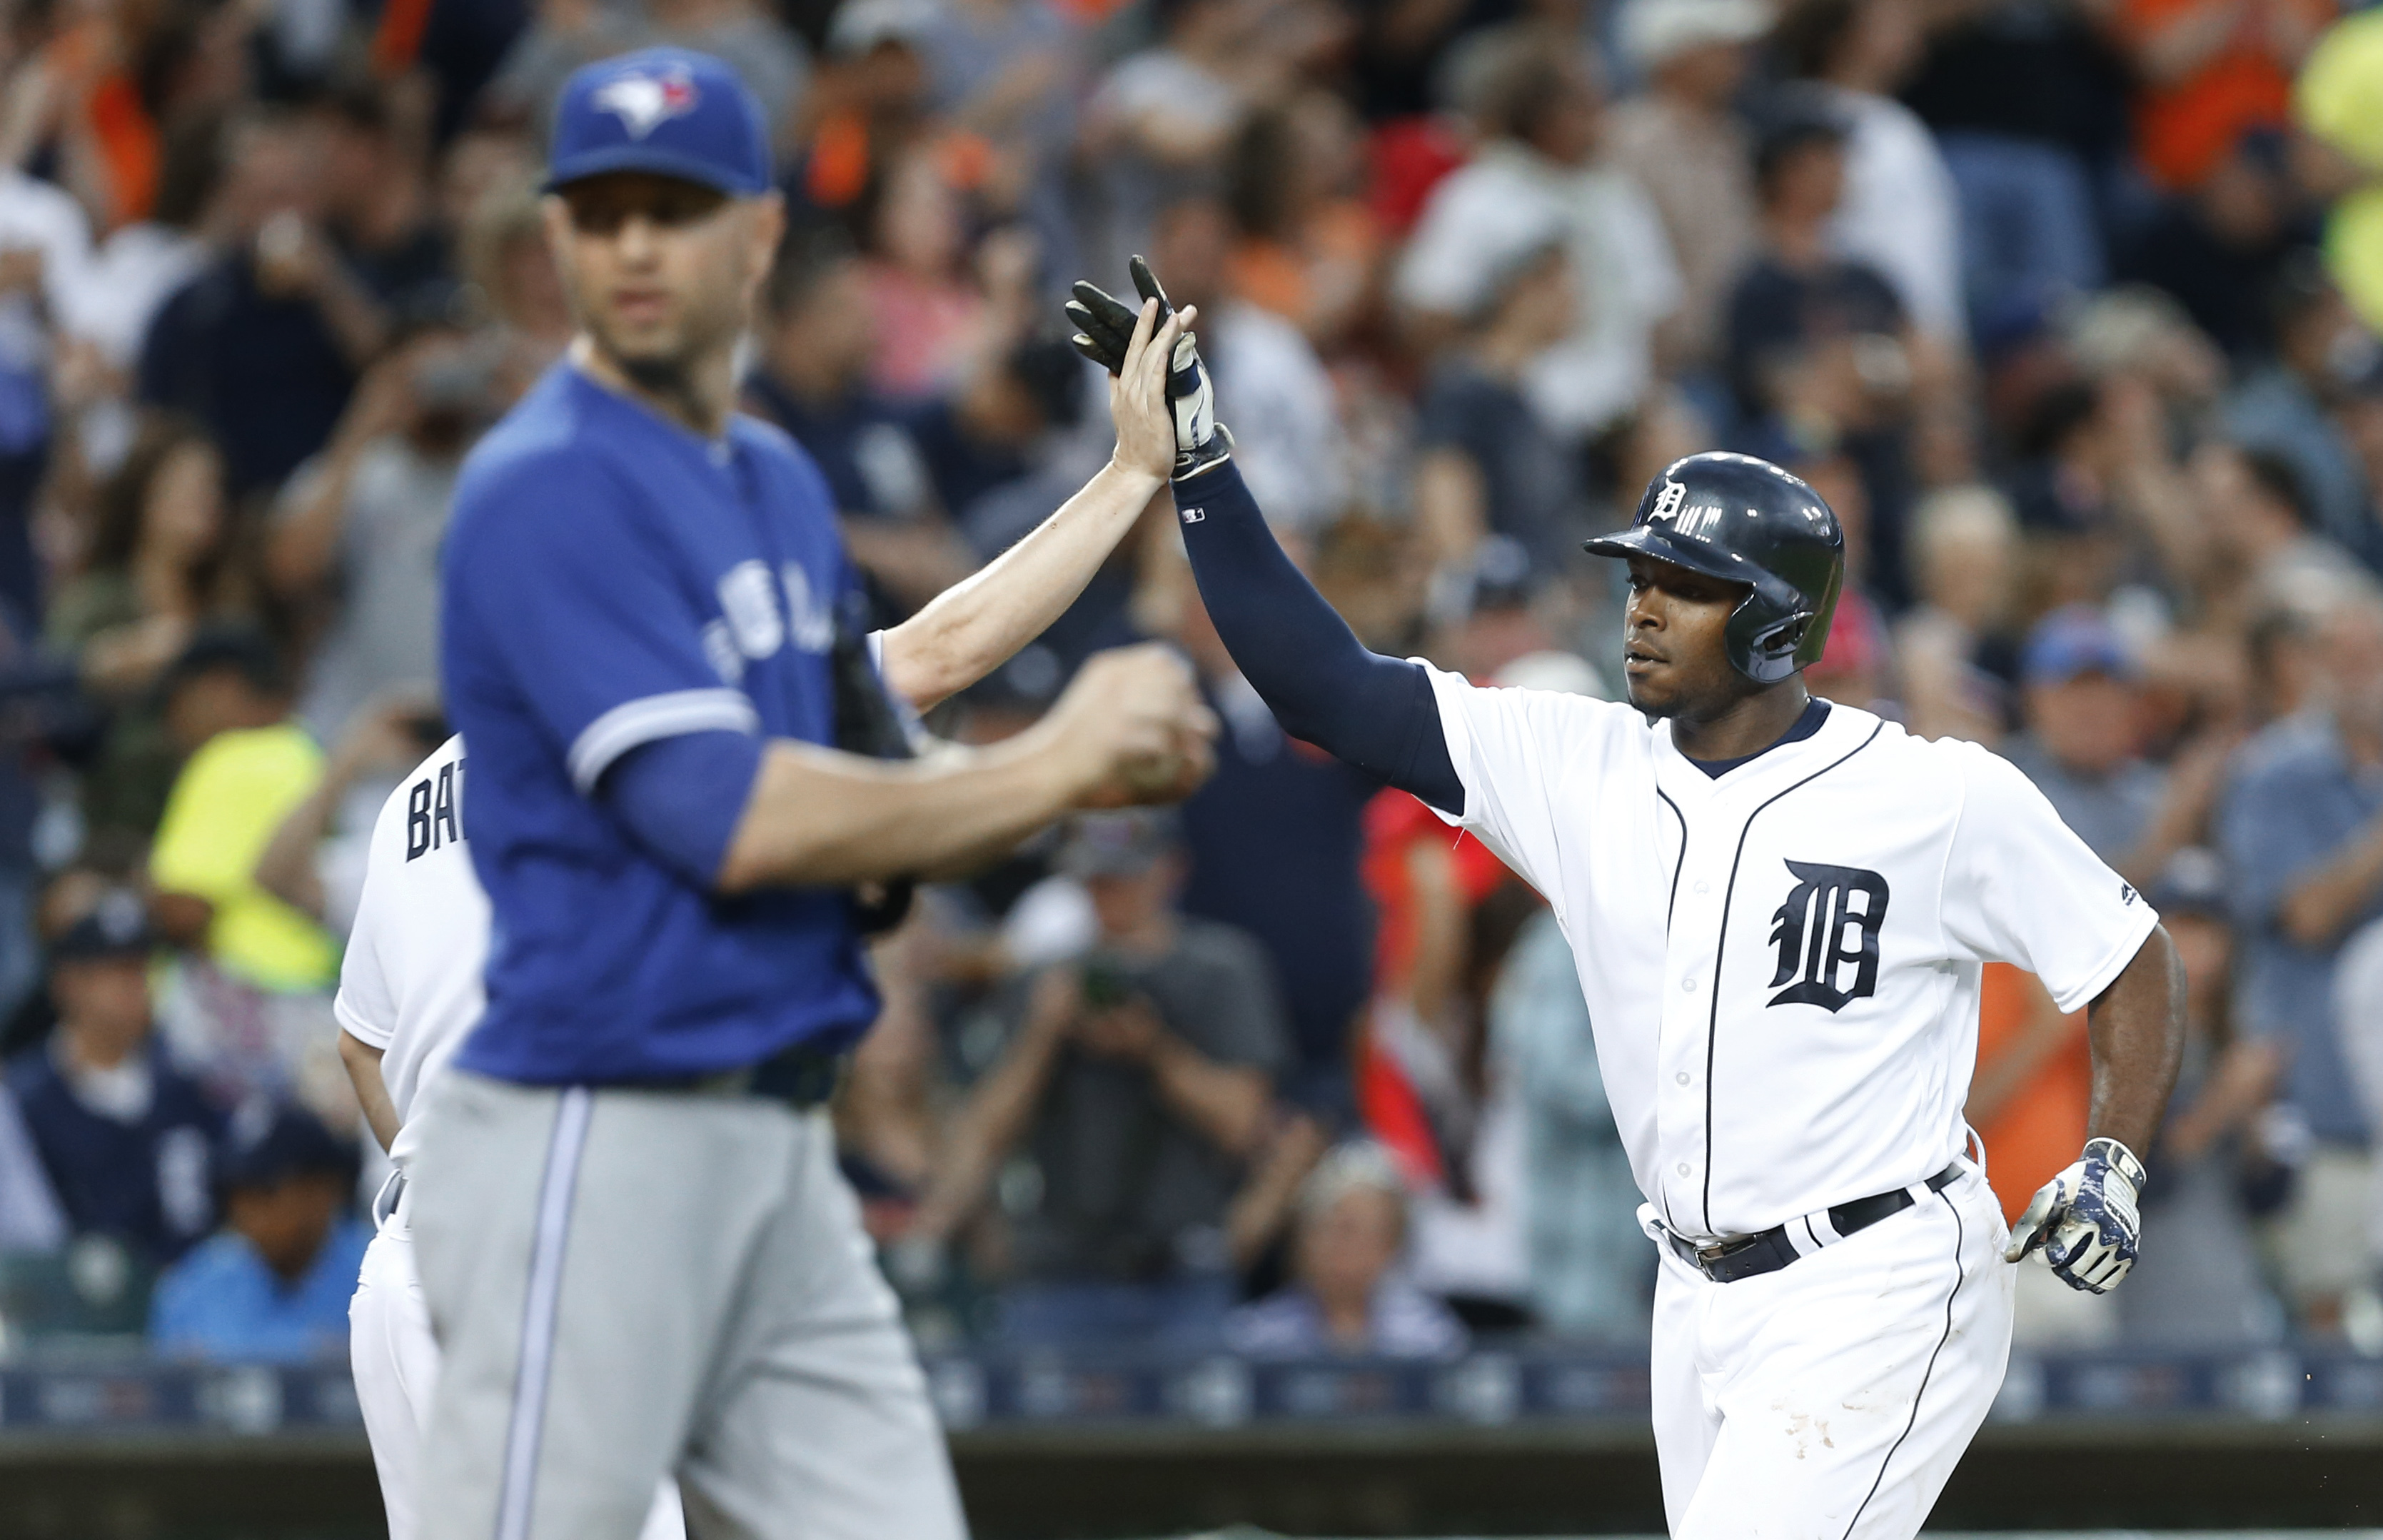 Detroit Tigers' Justin Upton, right, celebrates his two-run home run as Toronto Blue Jays pitcher J.A. Happ walks back to the mound in the third inning of a baseball game, Monday, June 6, 2016 in Detroit. (AP Photo/Paul Sancya)